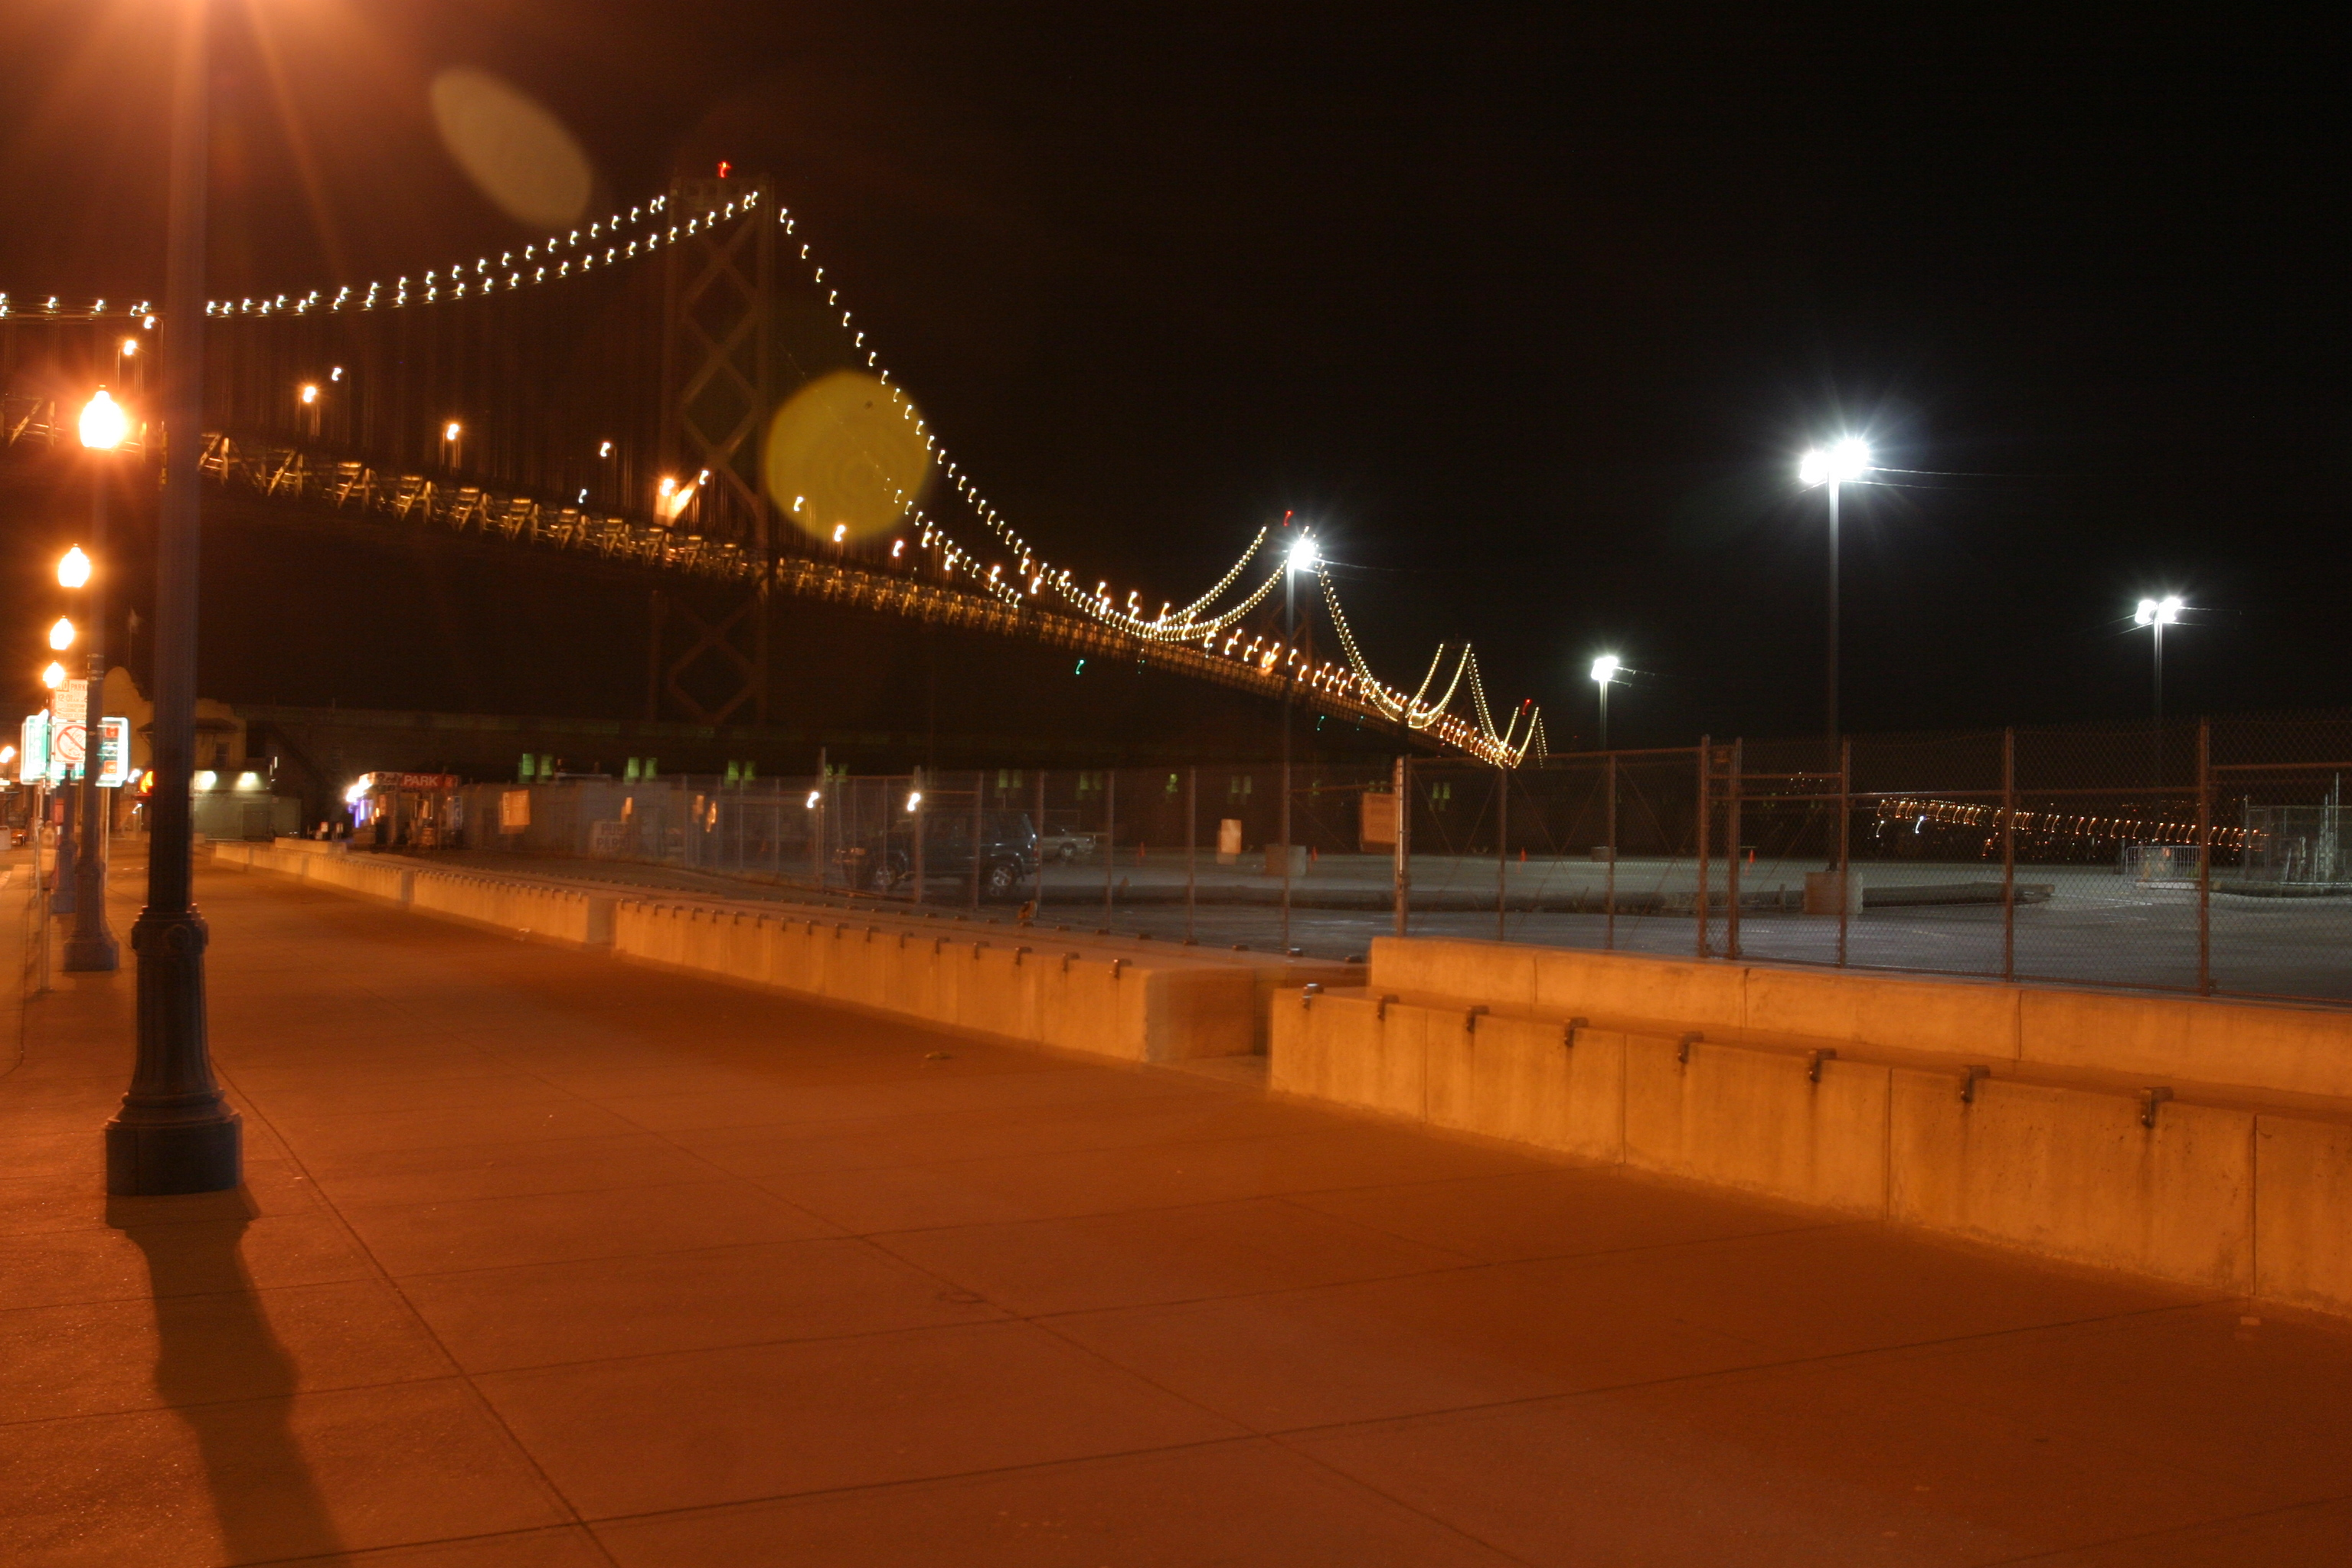 Bay Bridge and Embarcadero sidewalk